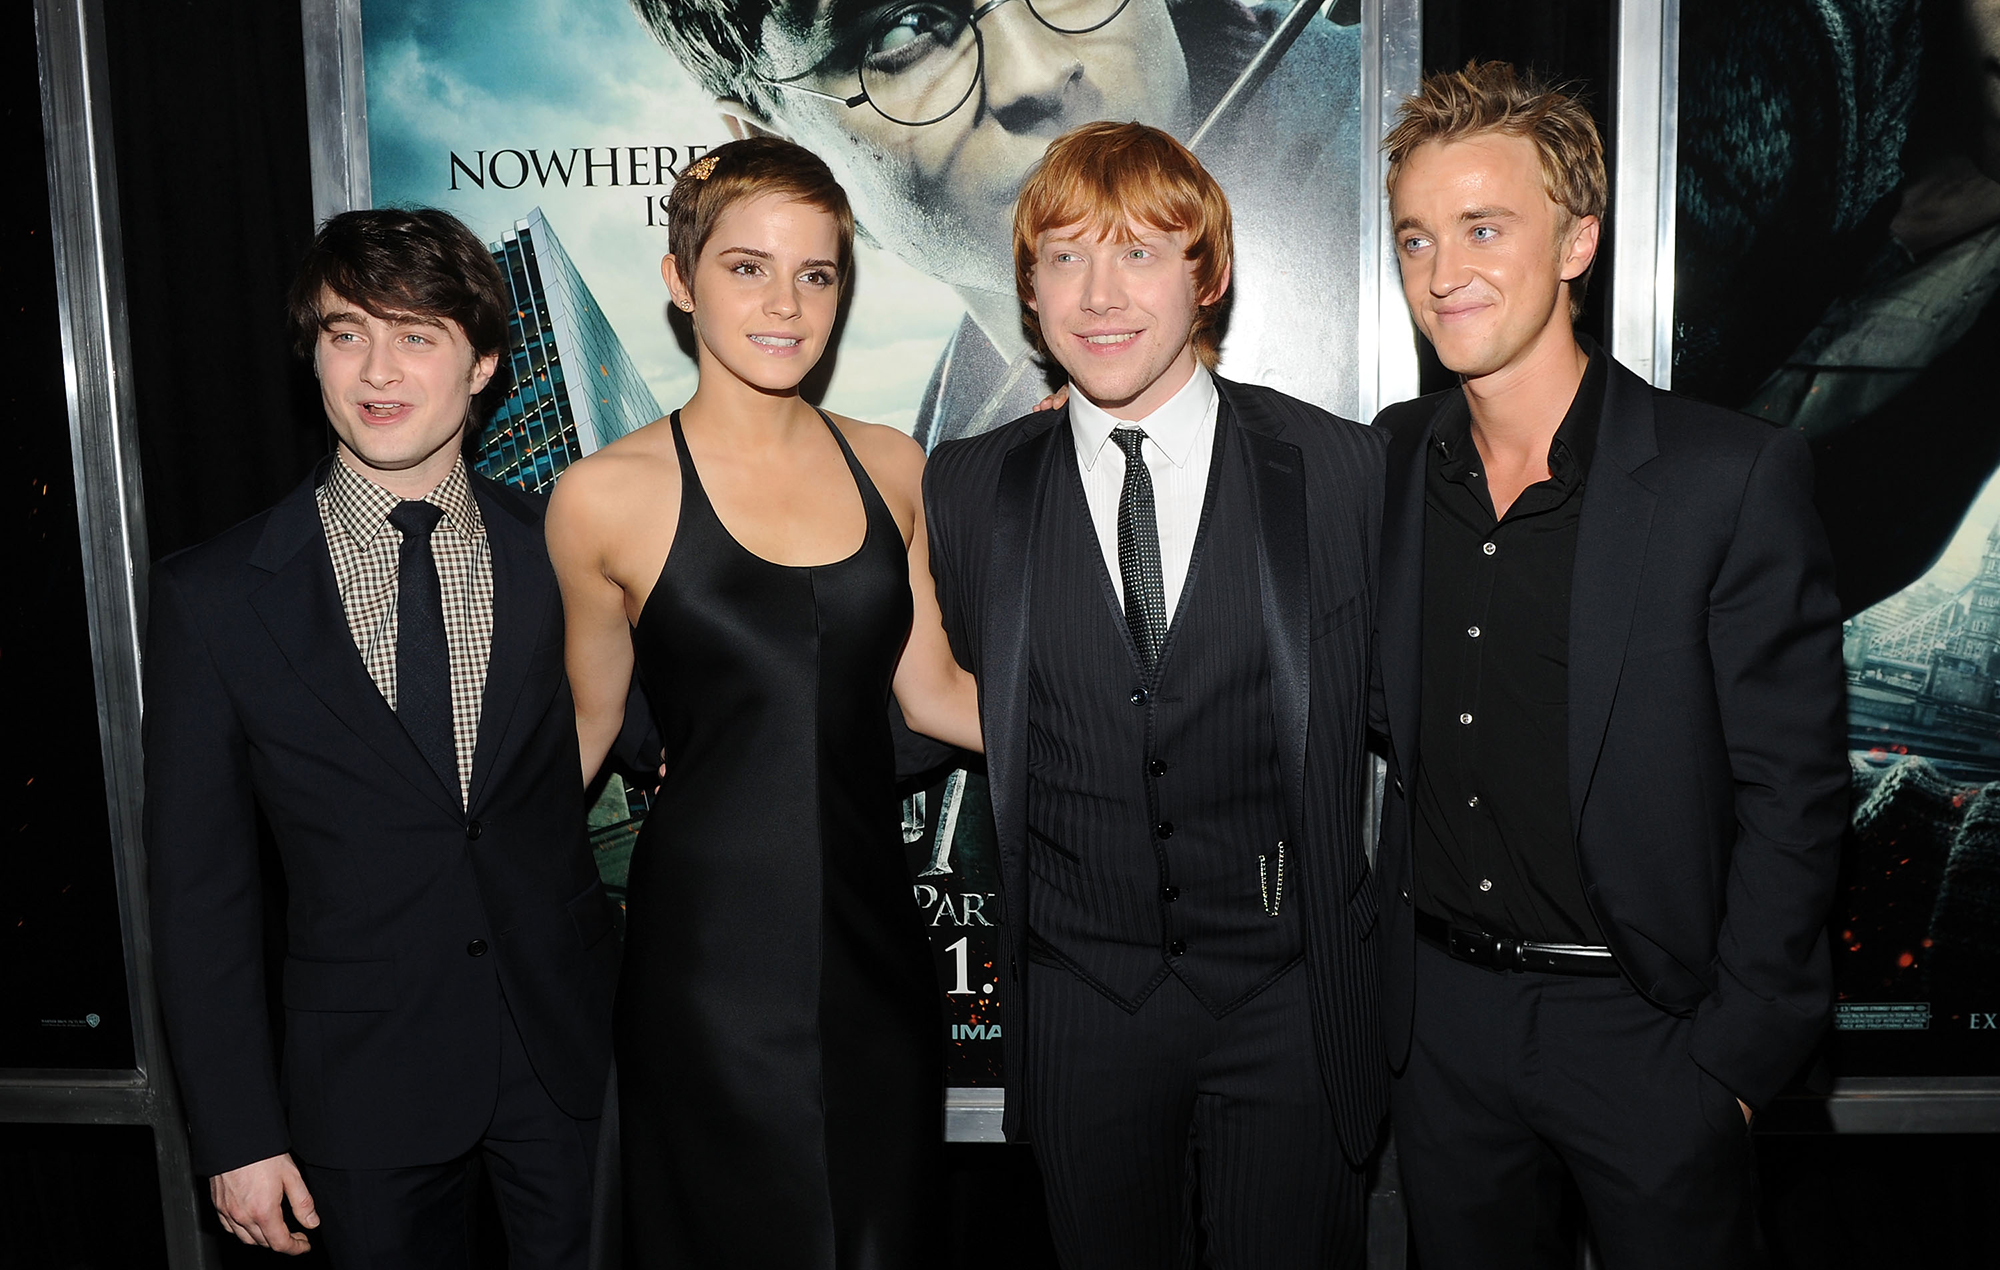 Harry Potter star Tom Felton shares adorable throwback video with Emma Watson and Daniel Radcliffe